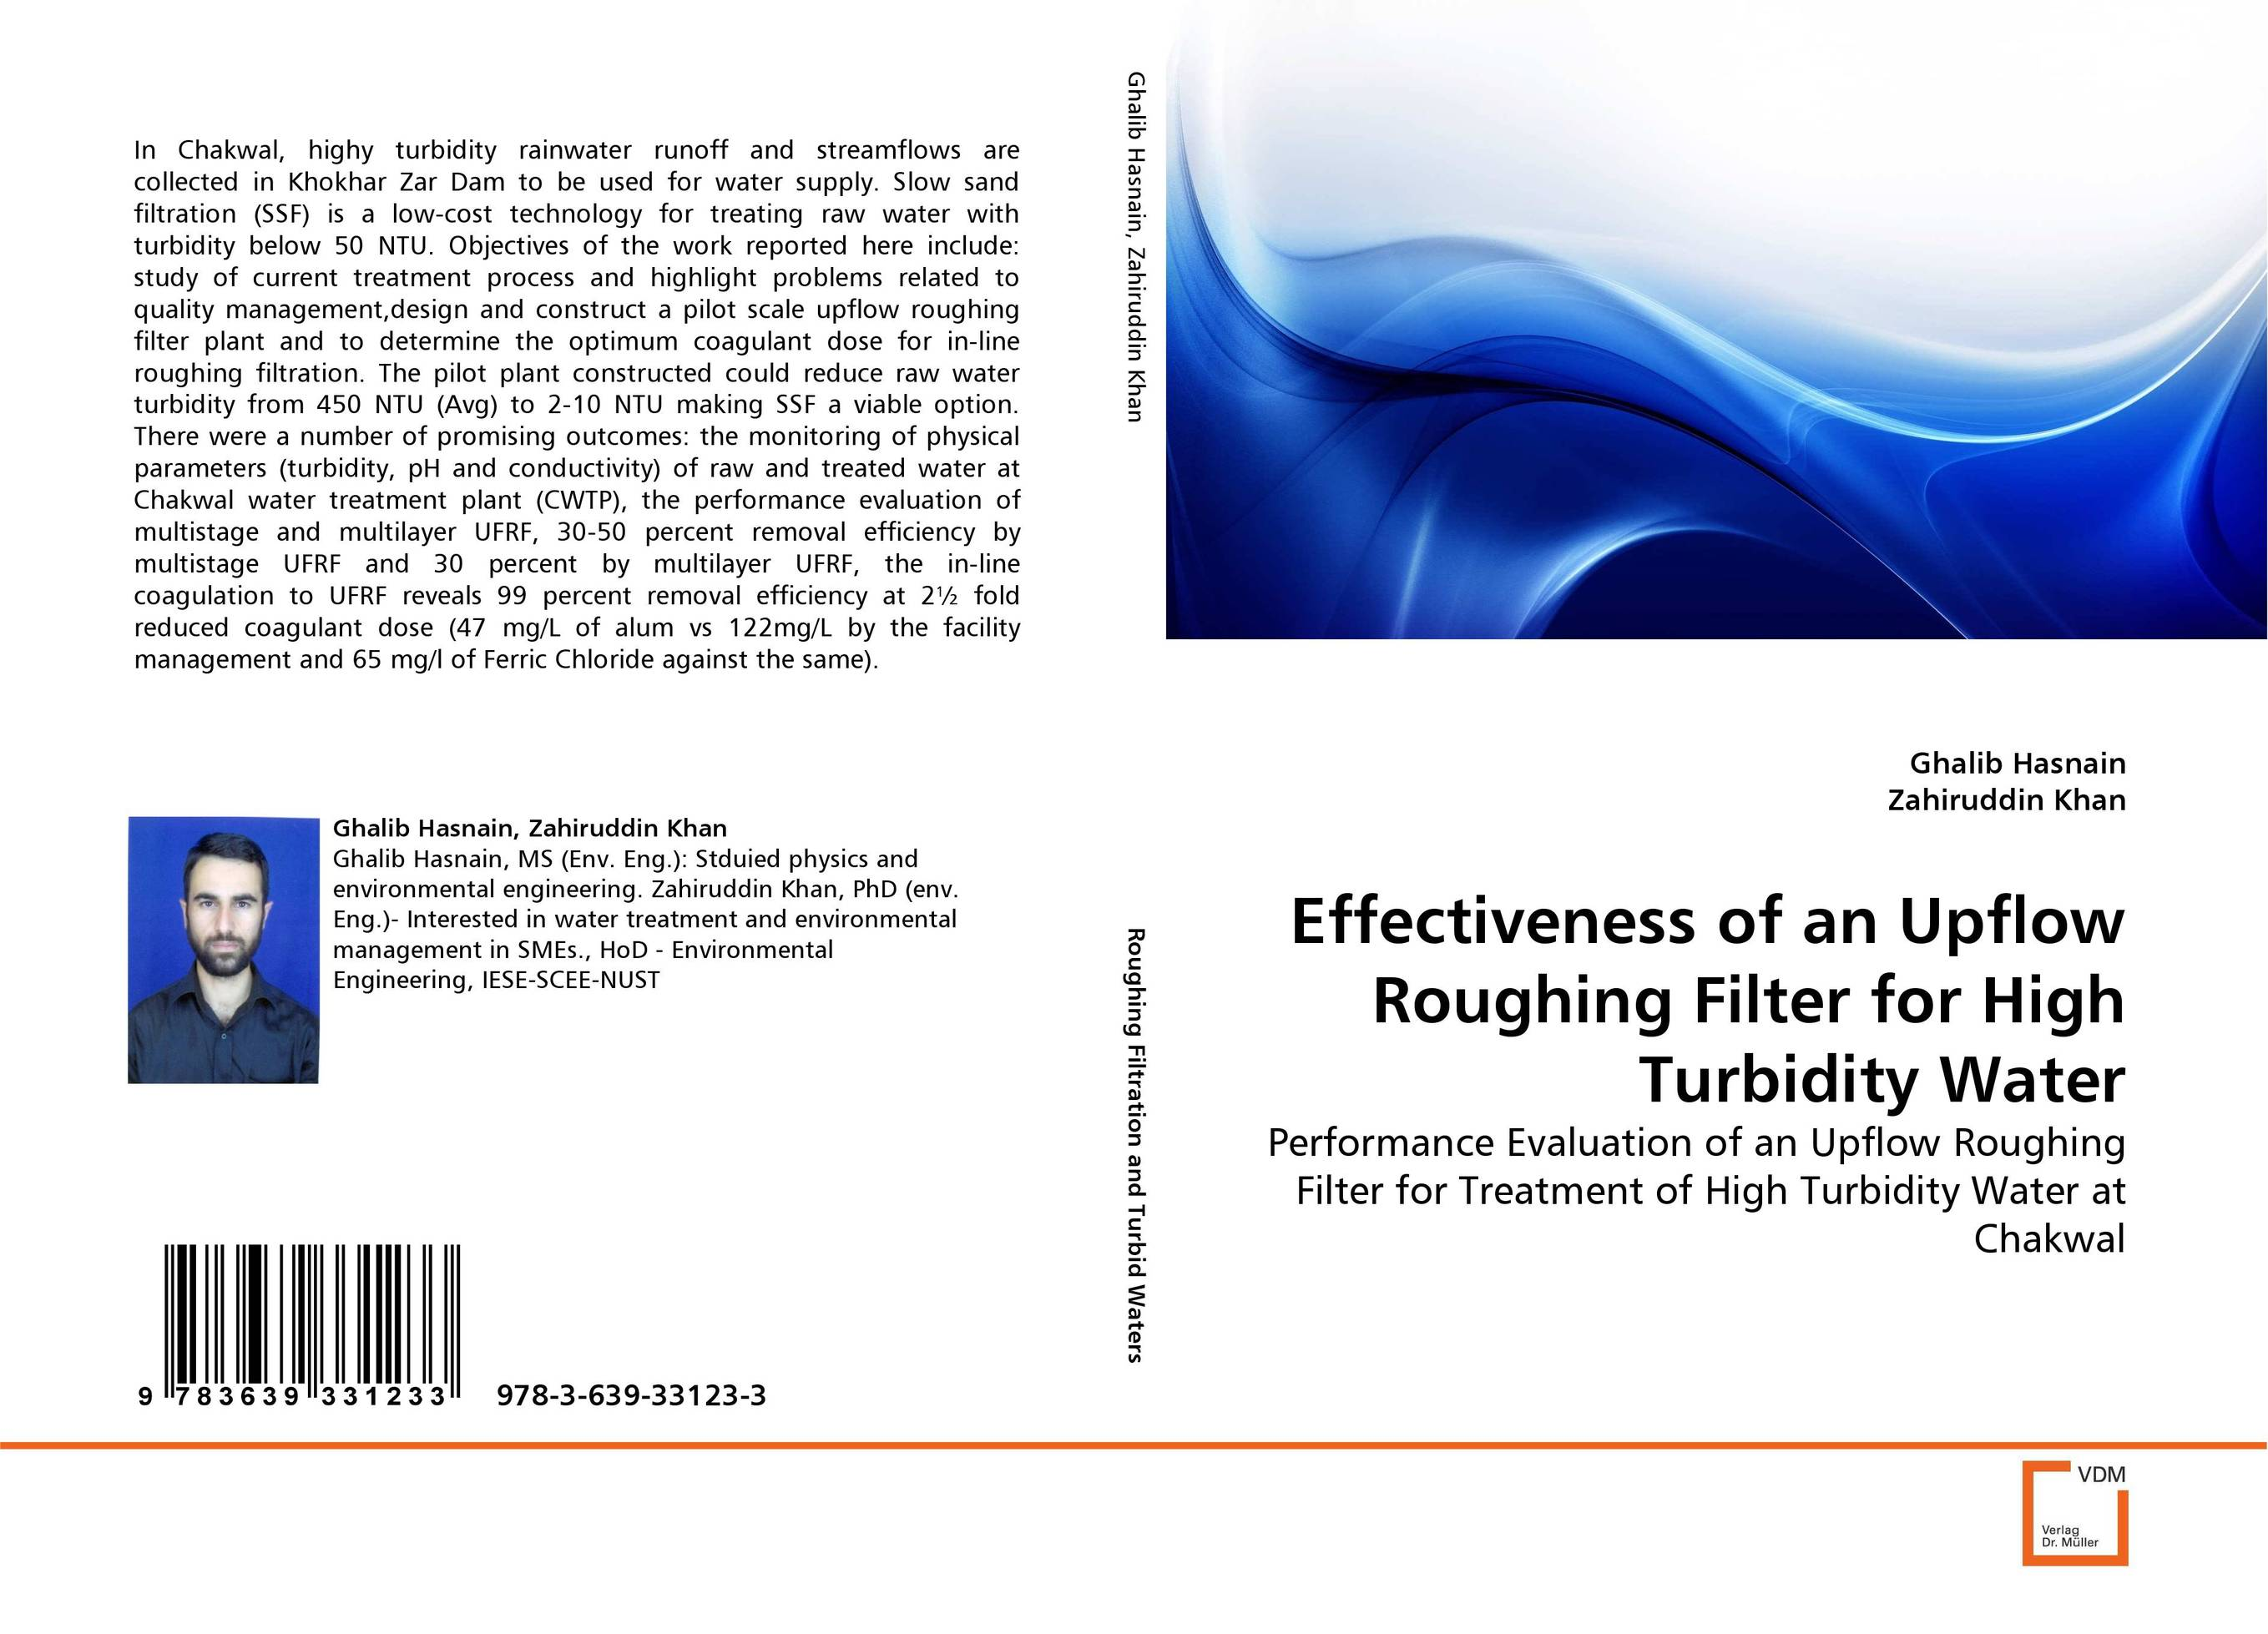 Effectiveness of an Upflow Roughing Filter for High Turbidity Water analysis fate and removal of pharmaceuticals in the water cycle 50